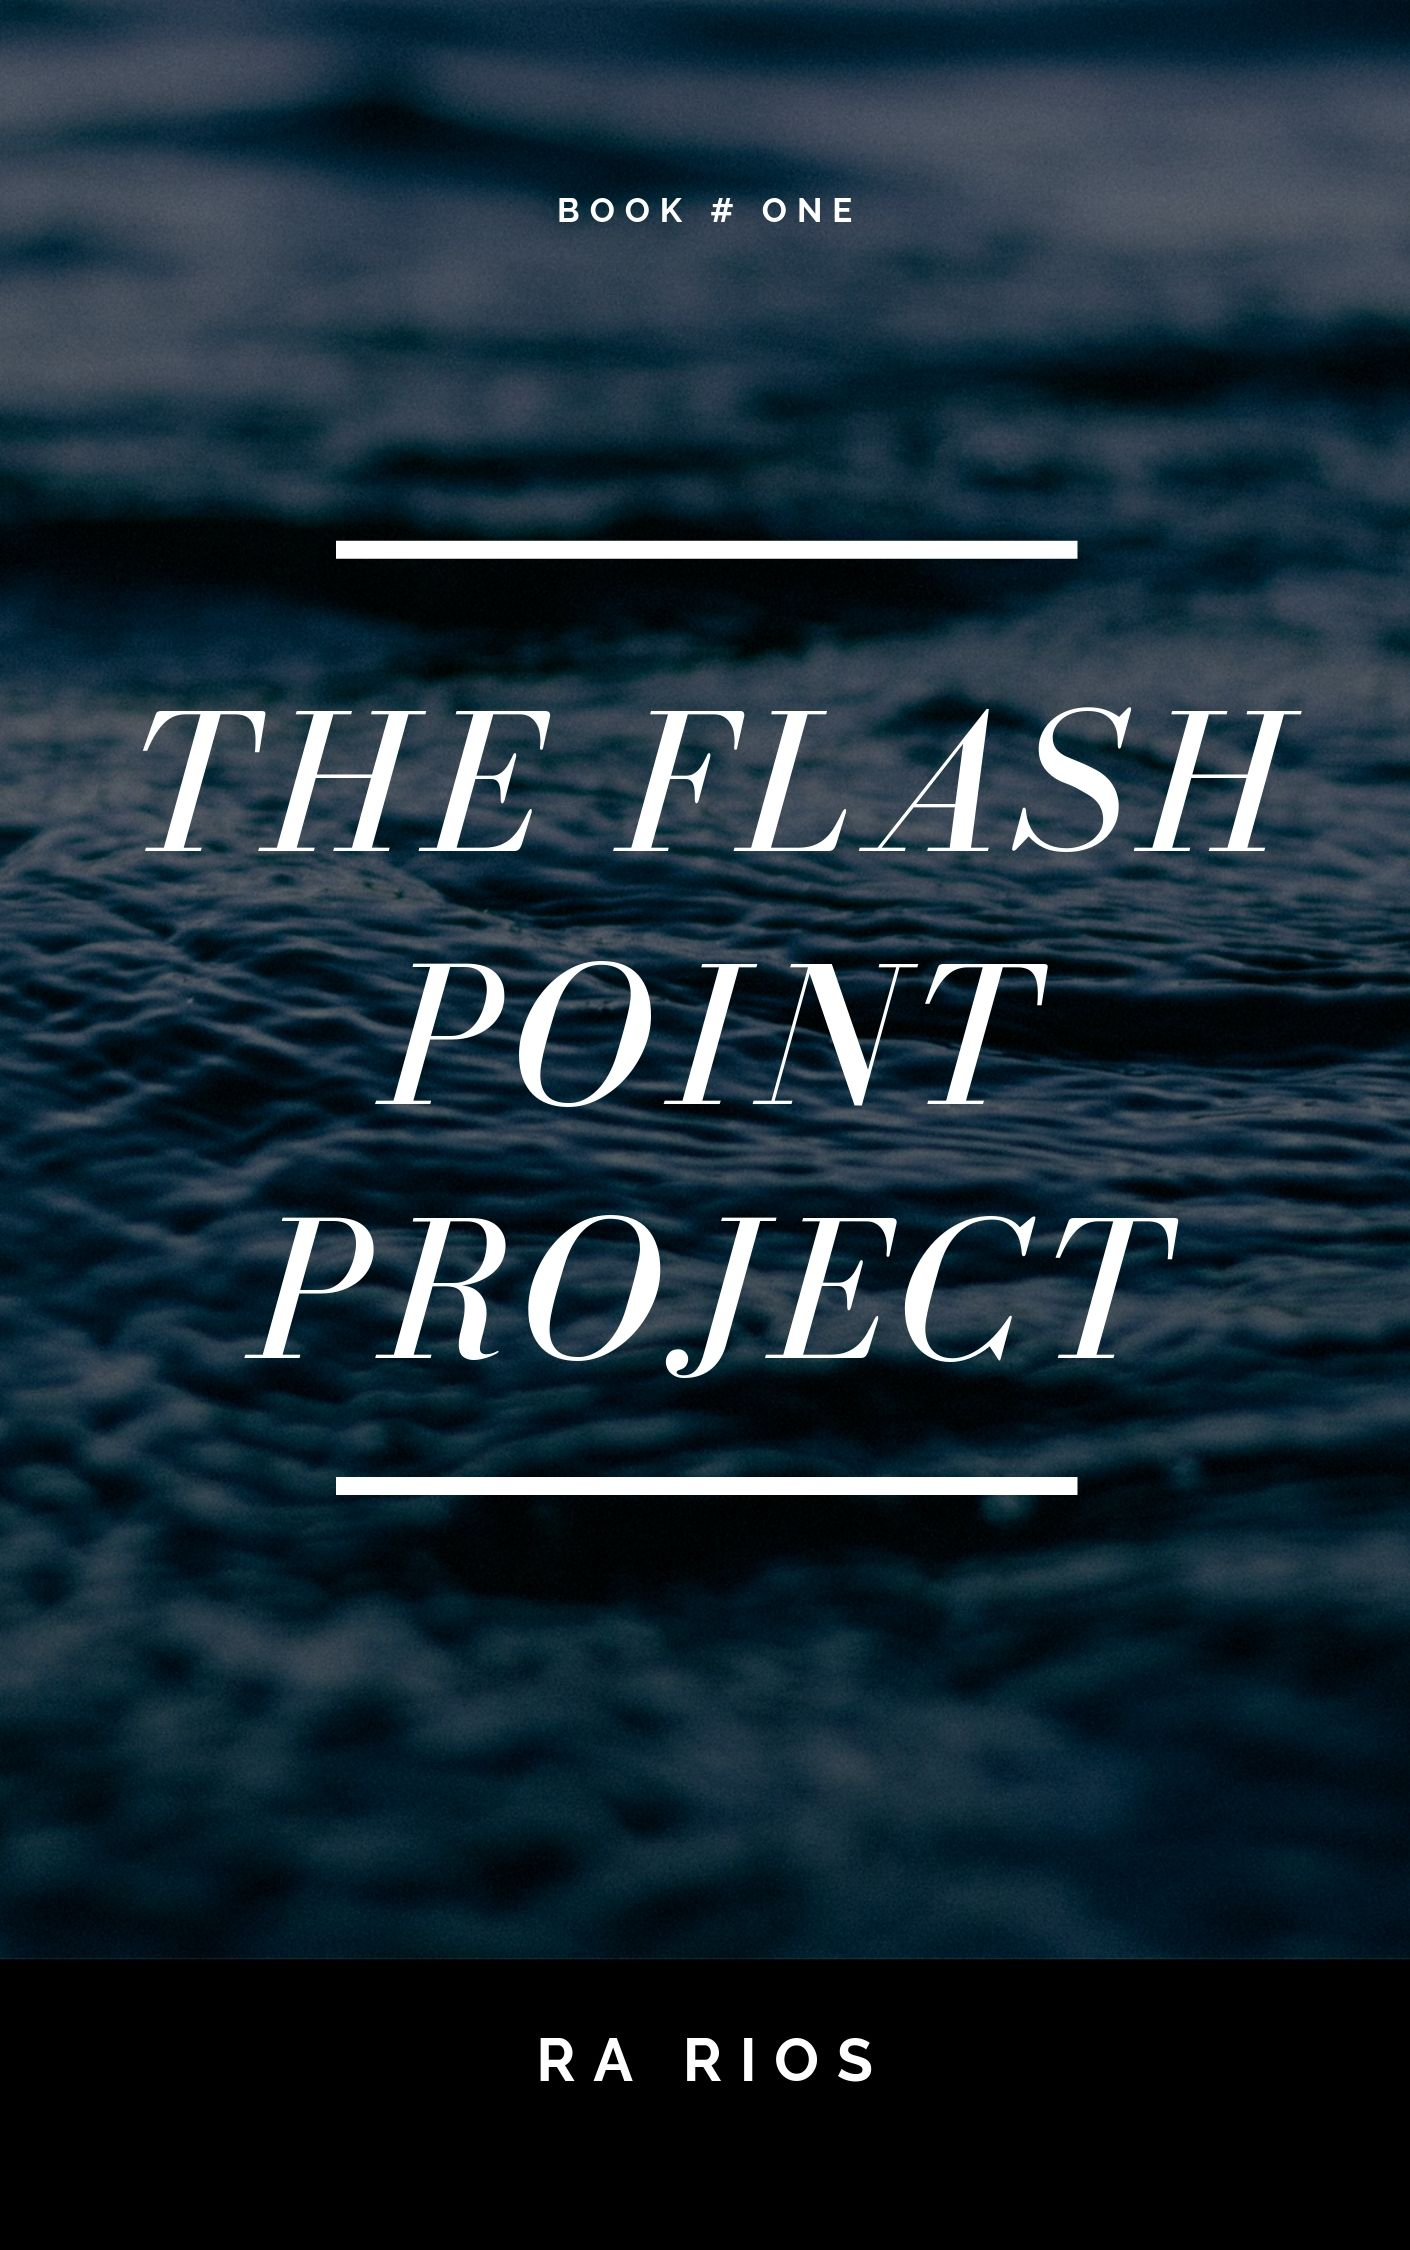 The Flash Point Project